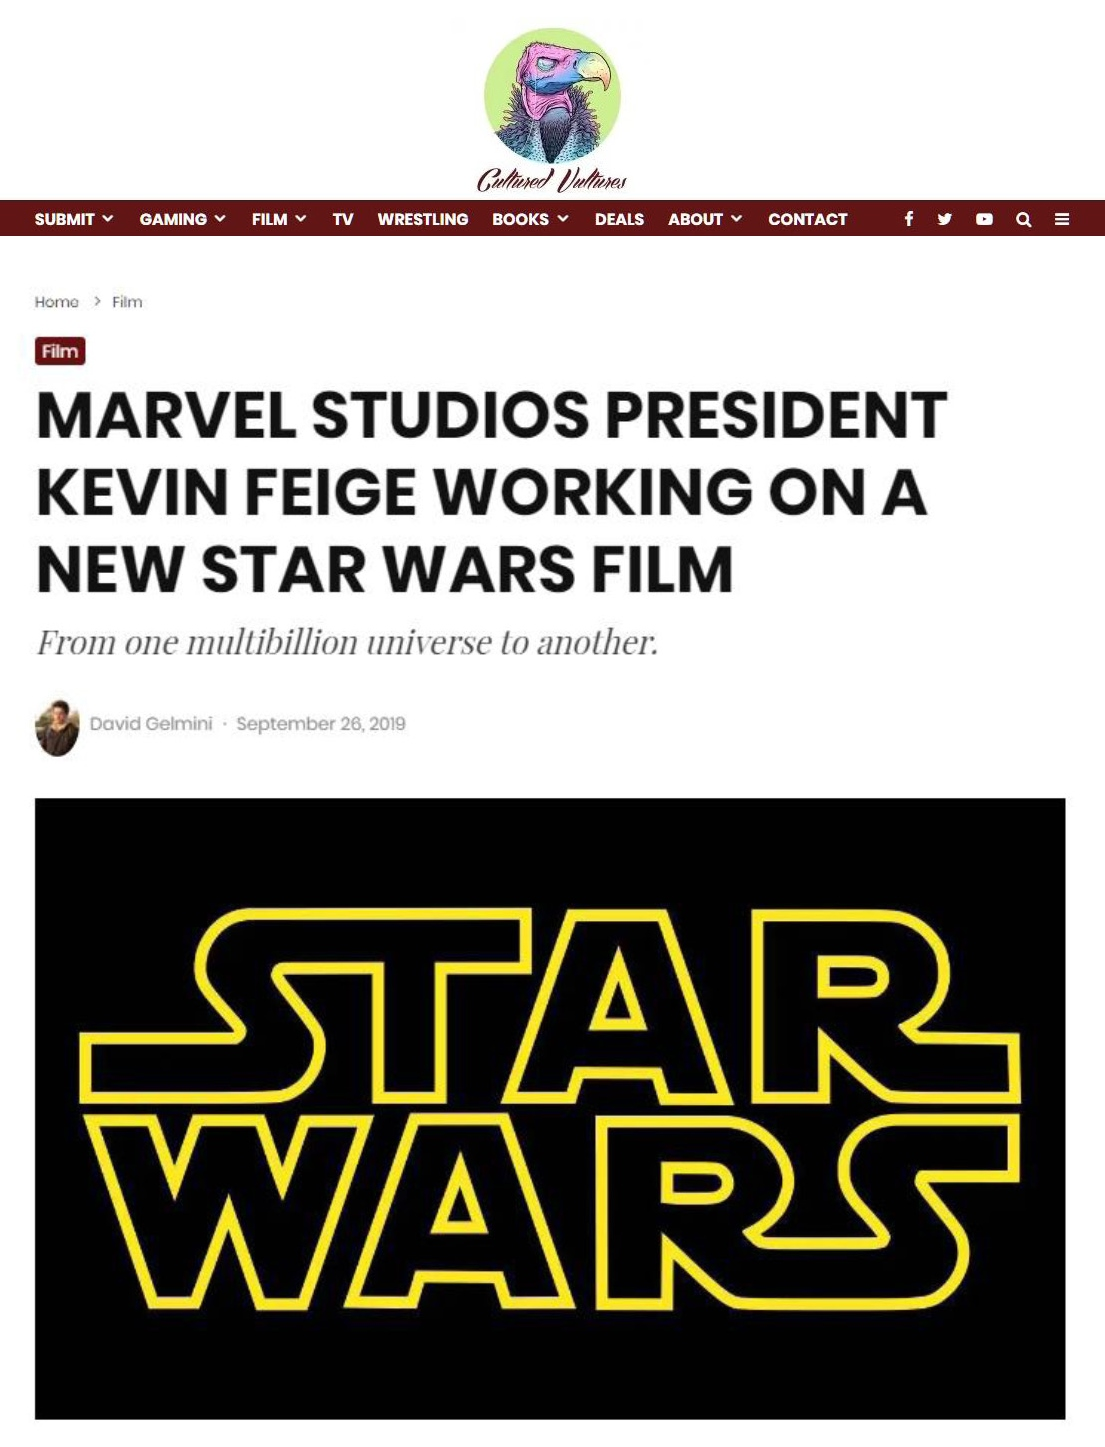 Cultured Vultures: Marvel Studios President Kevin Feige Working on a New Star Wars Film